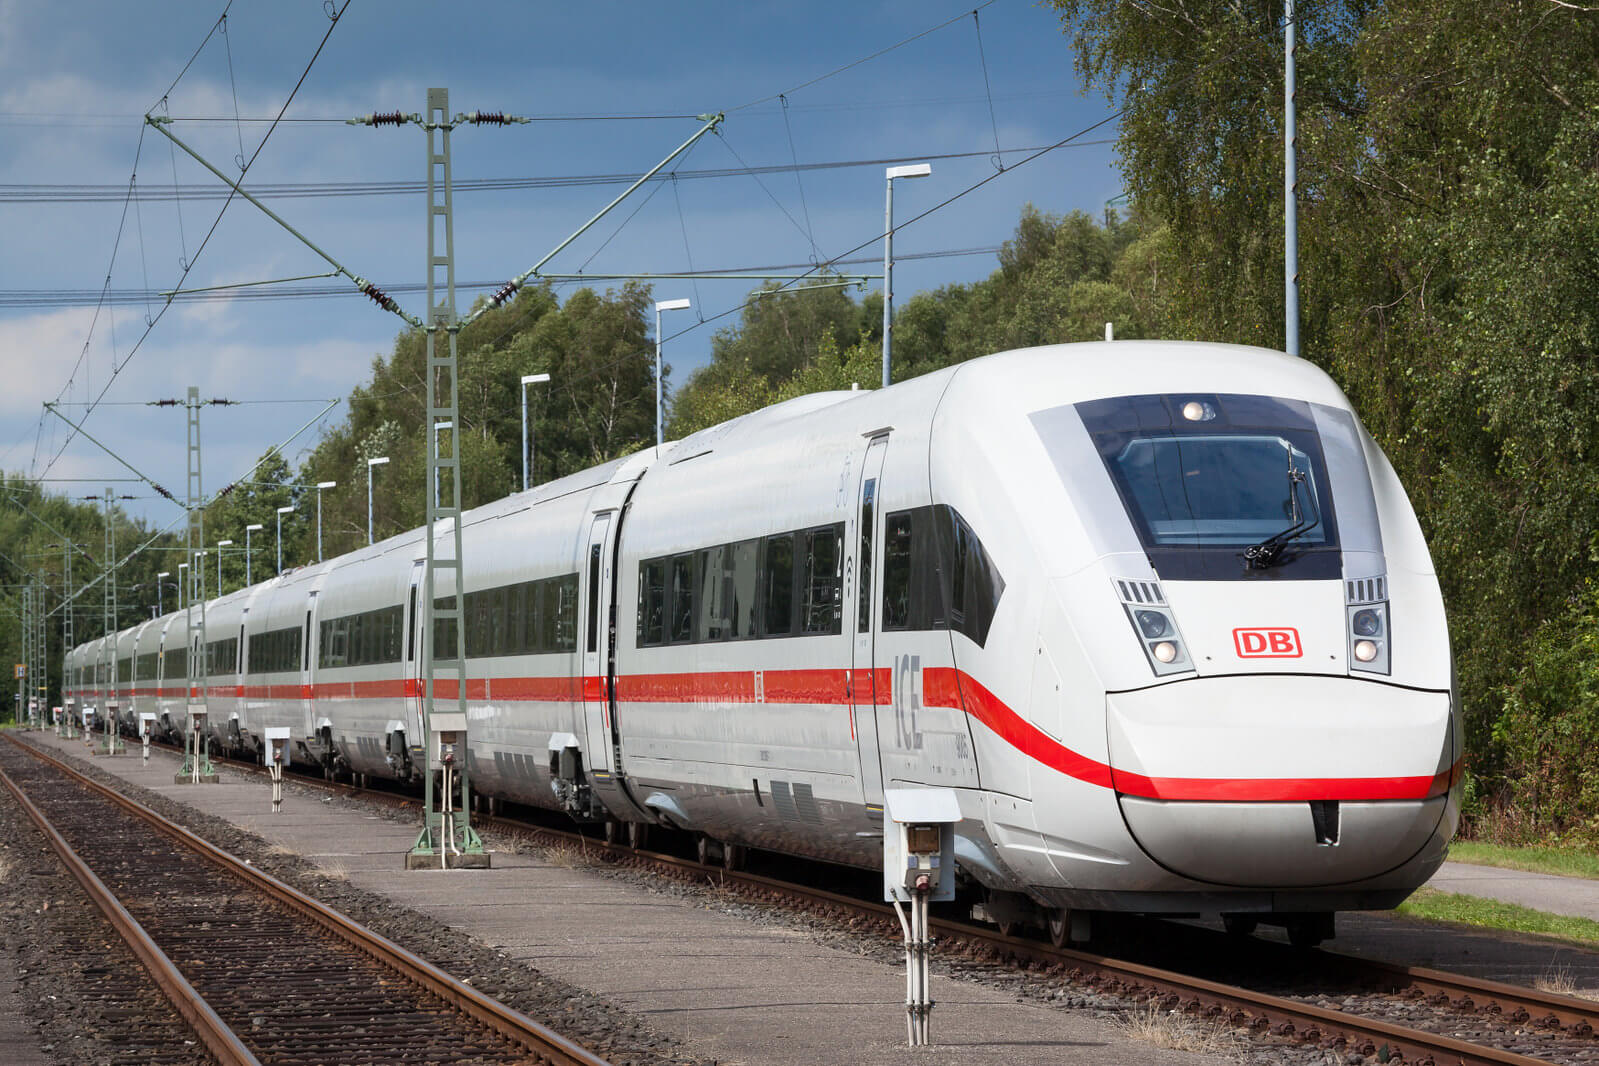 Qatar and Deutsche Bahn